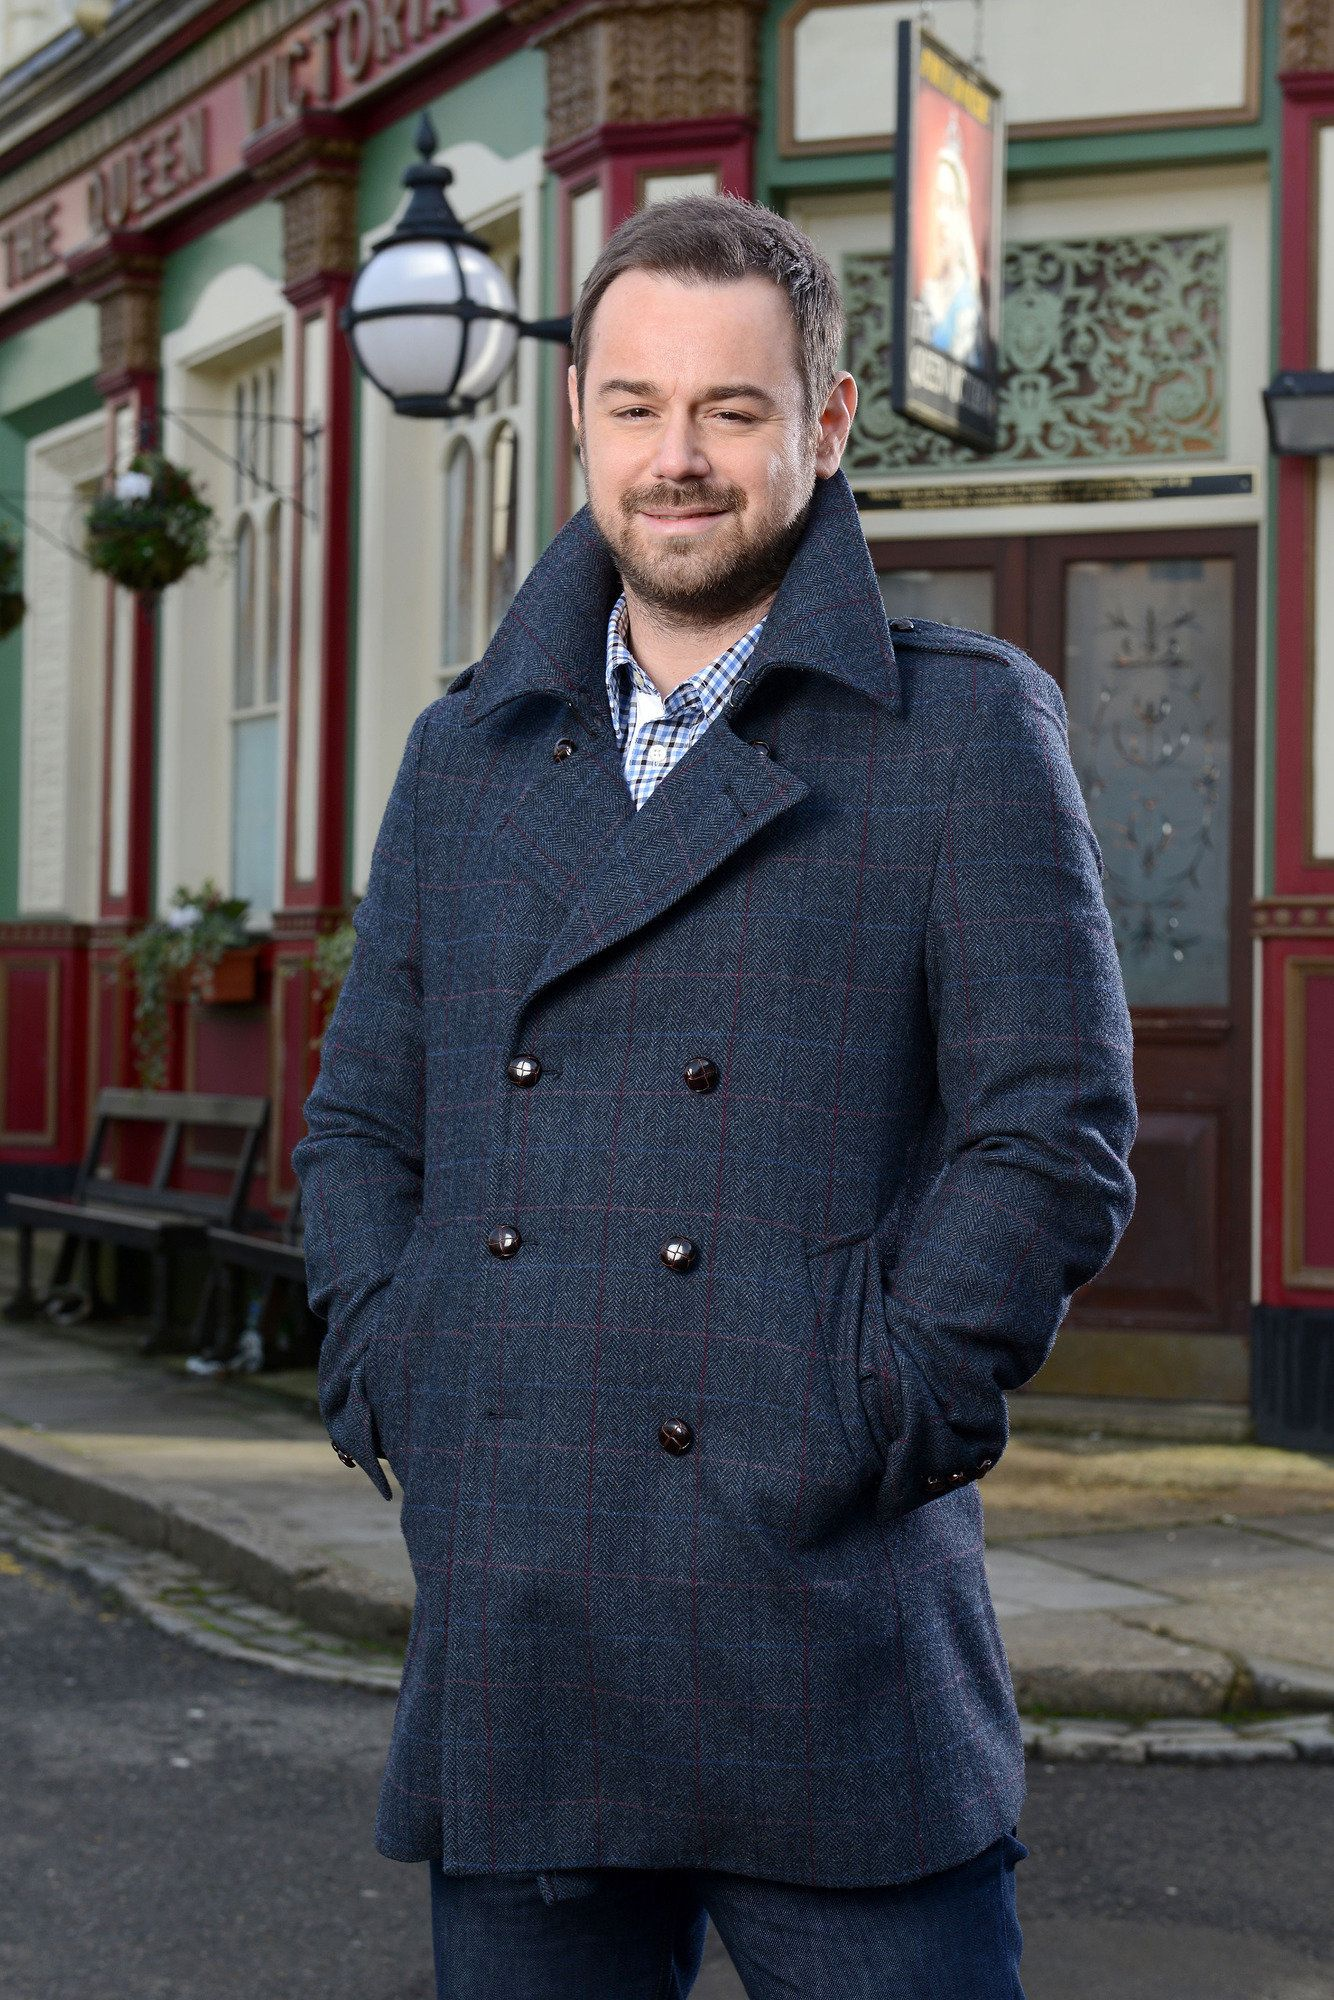 Danny Dyer plays Mick Carter on the BBC